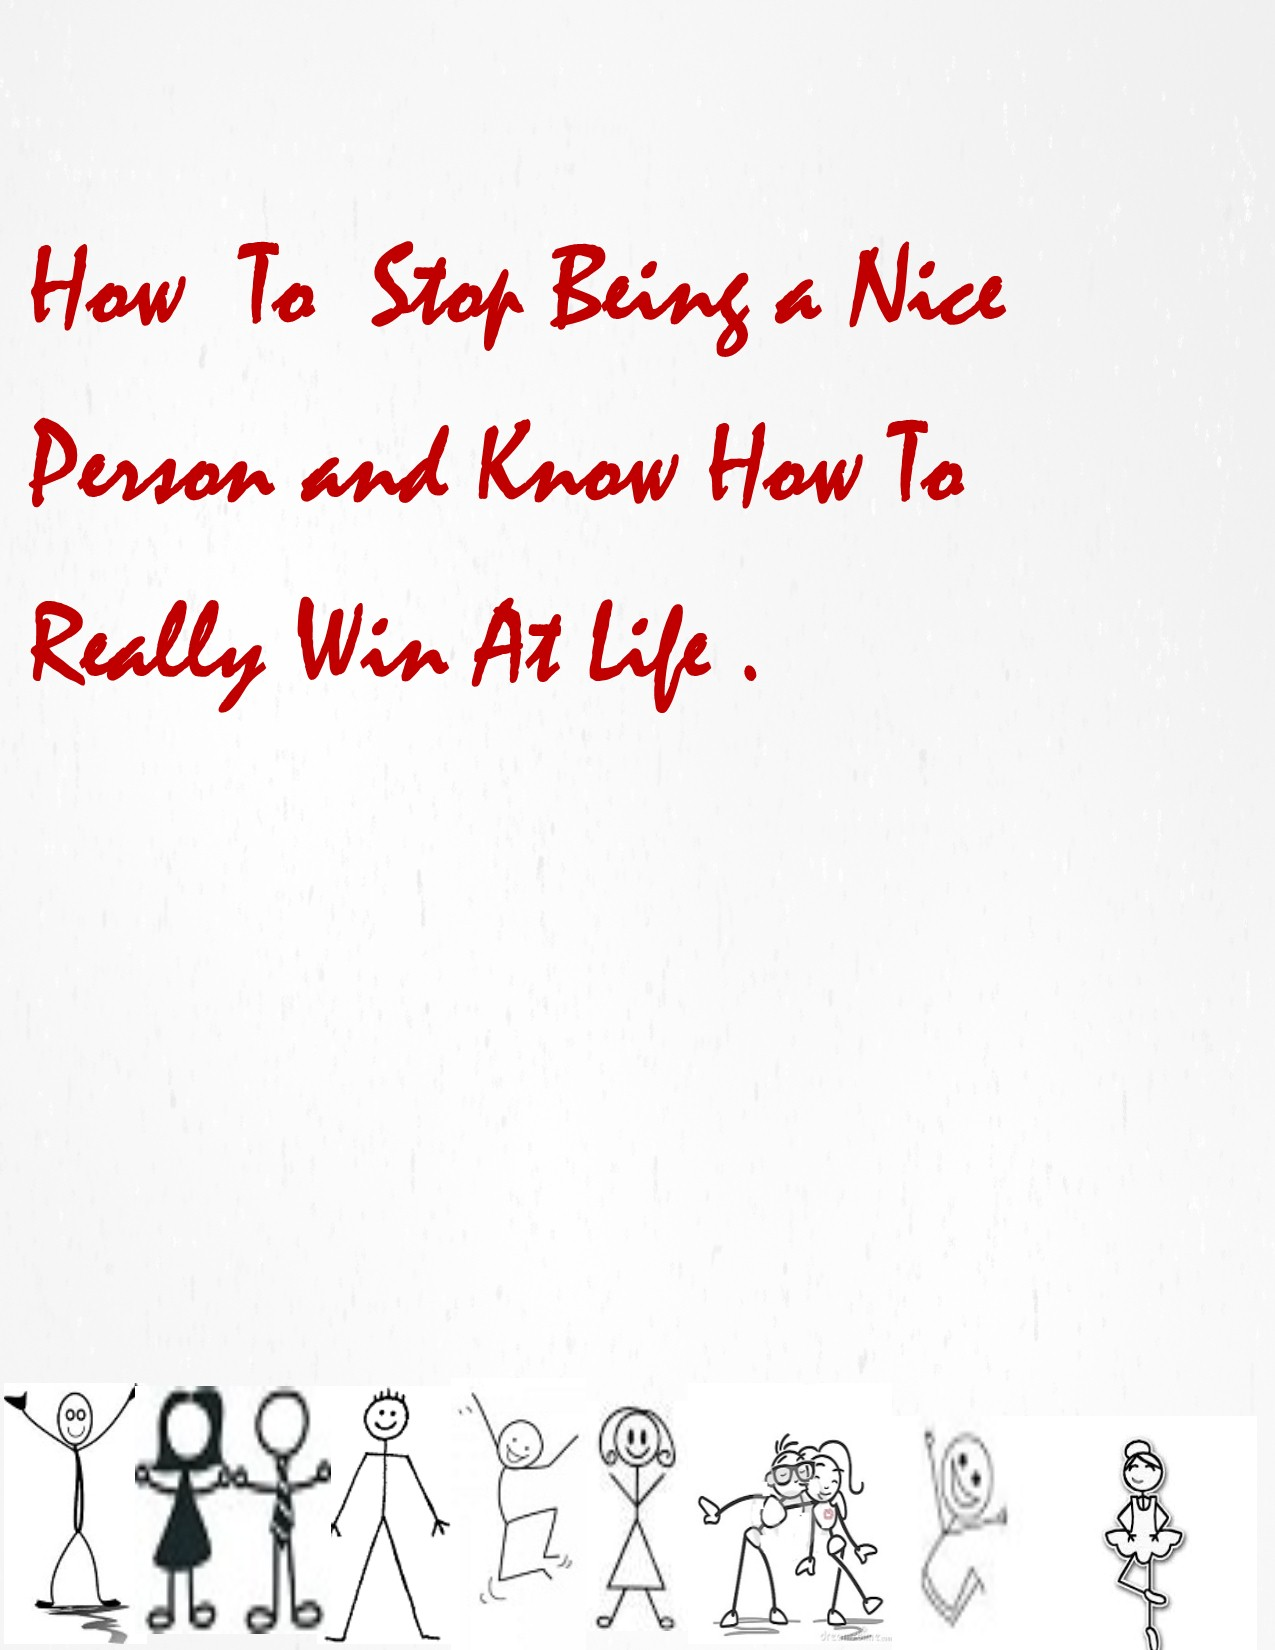 How To Stop Being a Nice Person And Know How To Really Win At Life